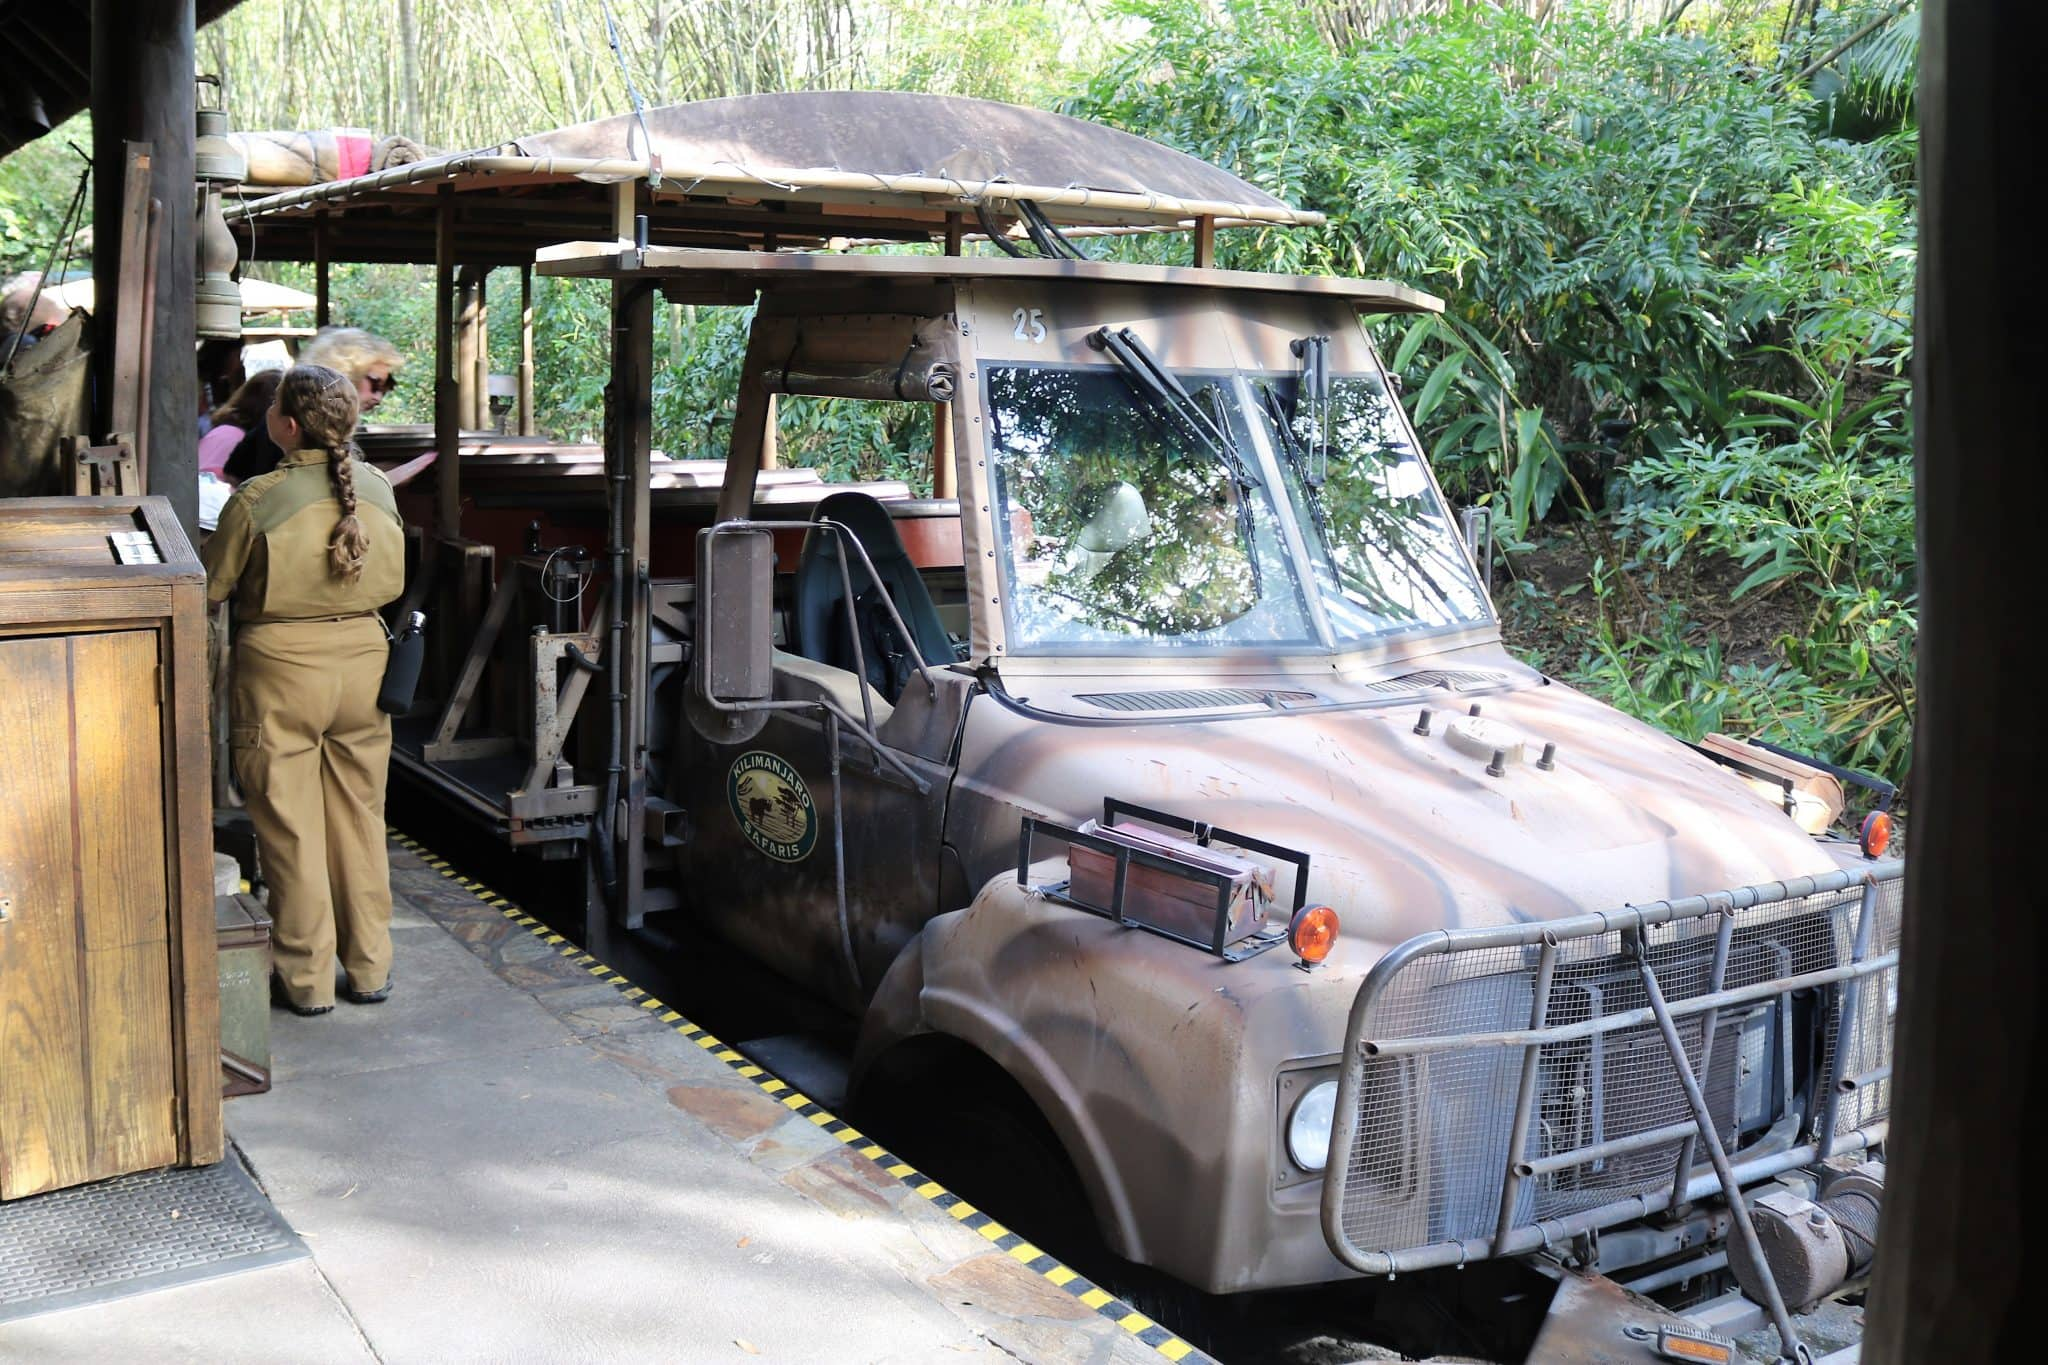 Animal Kingdom For Kids | What is there to Do | Best Fast Pass